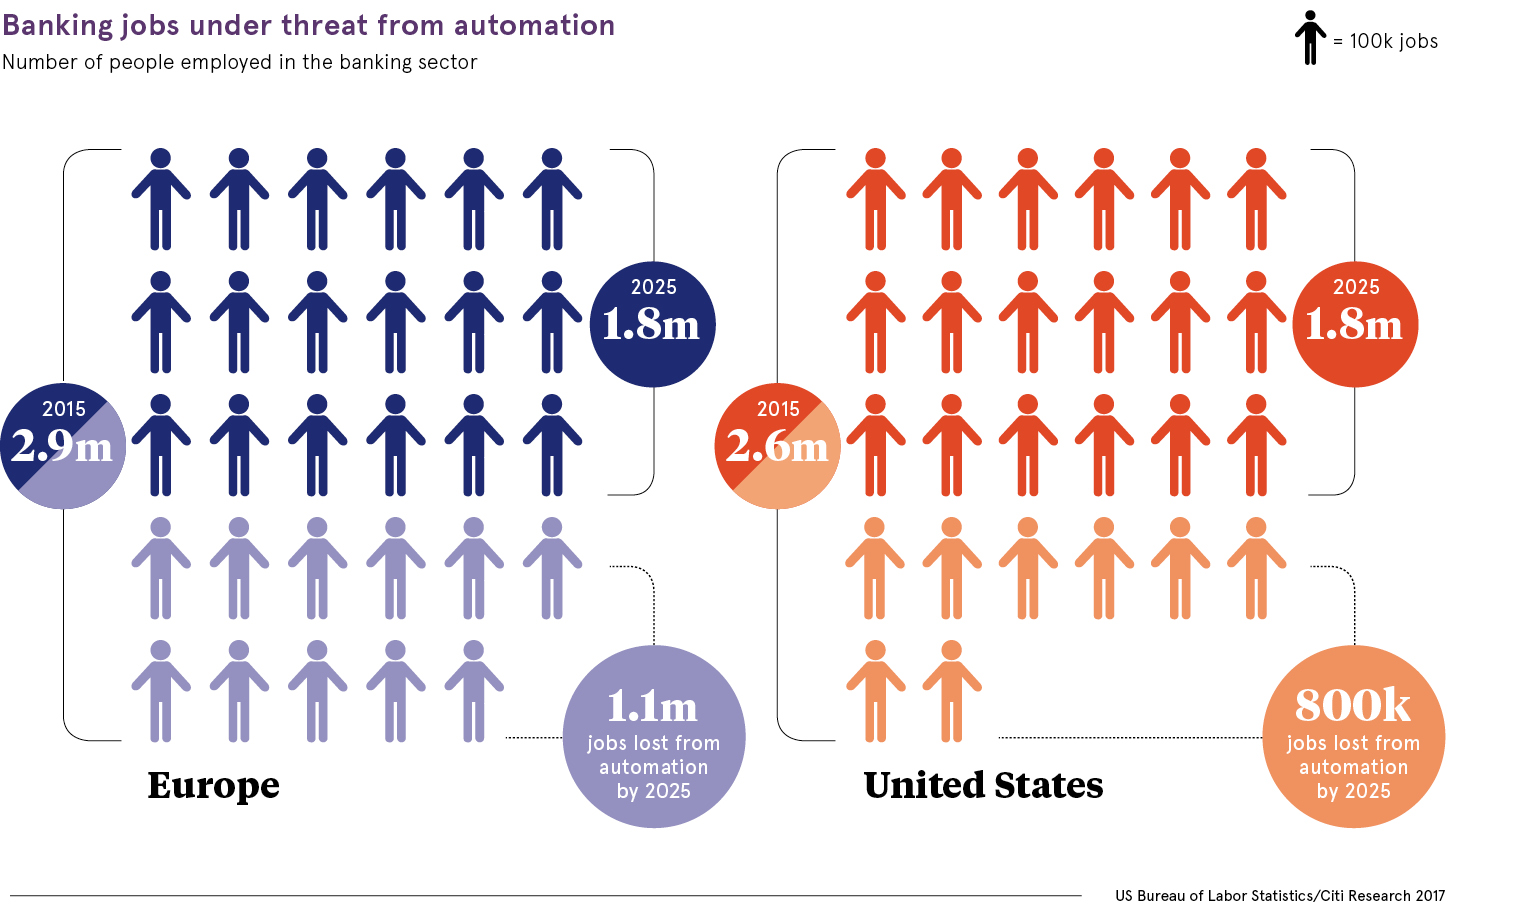 Banking jobs under threat from automation chart